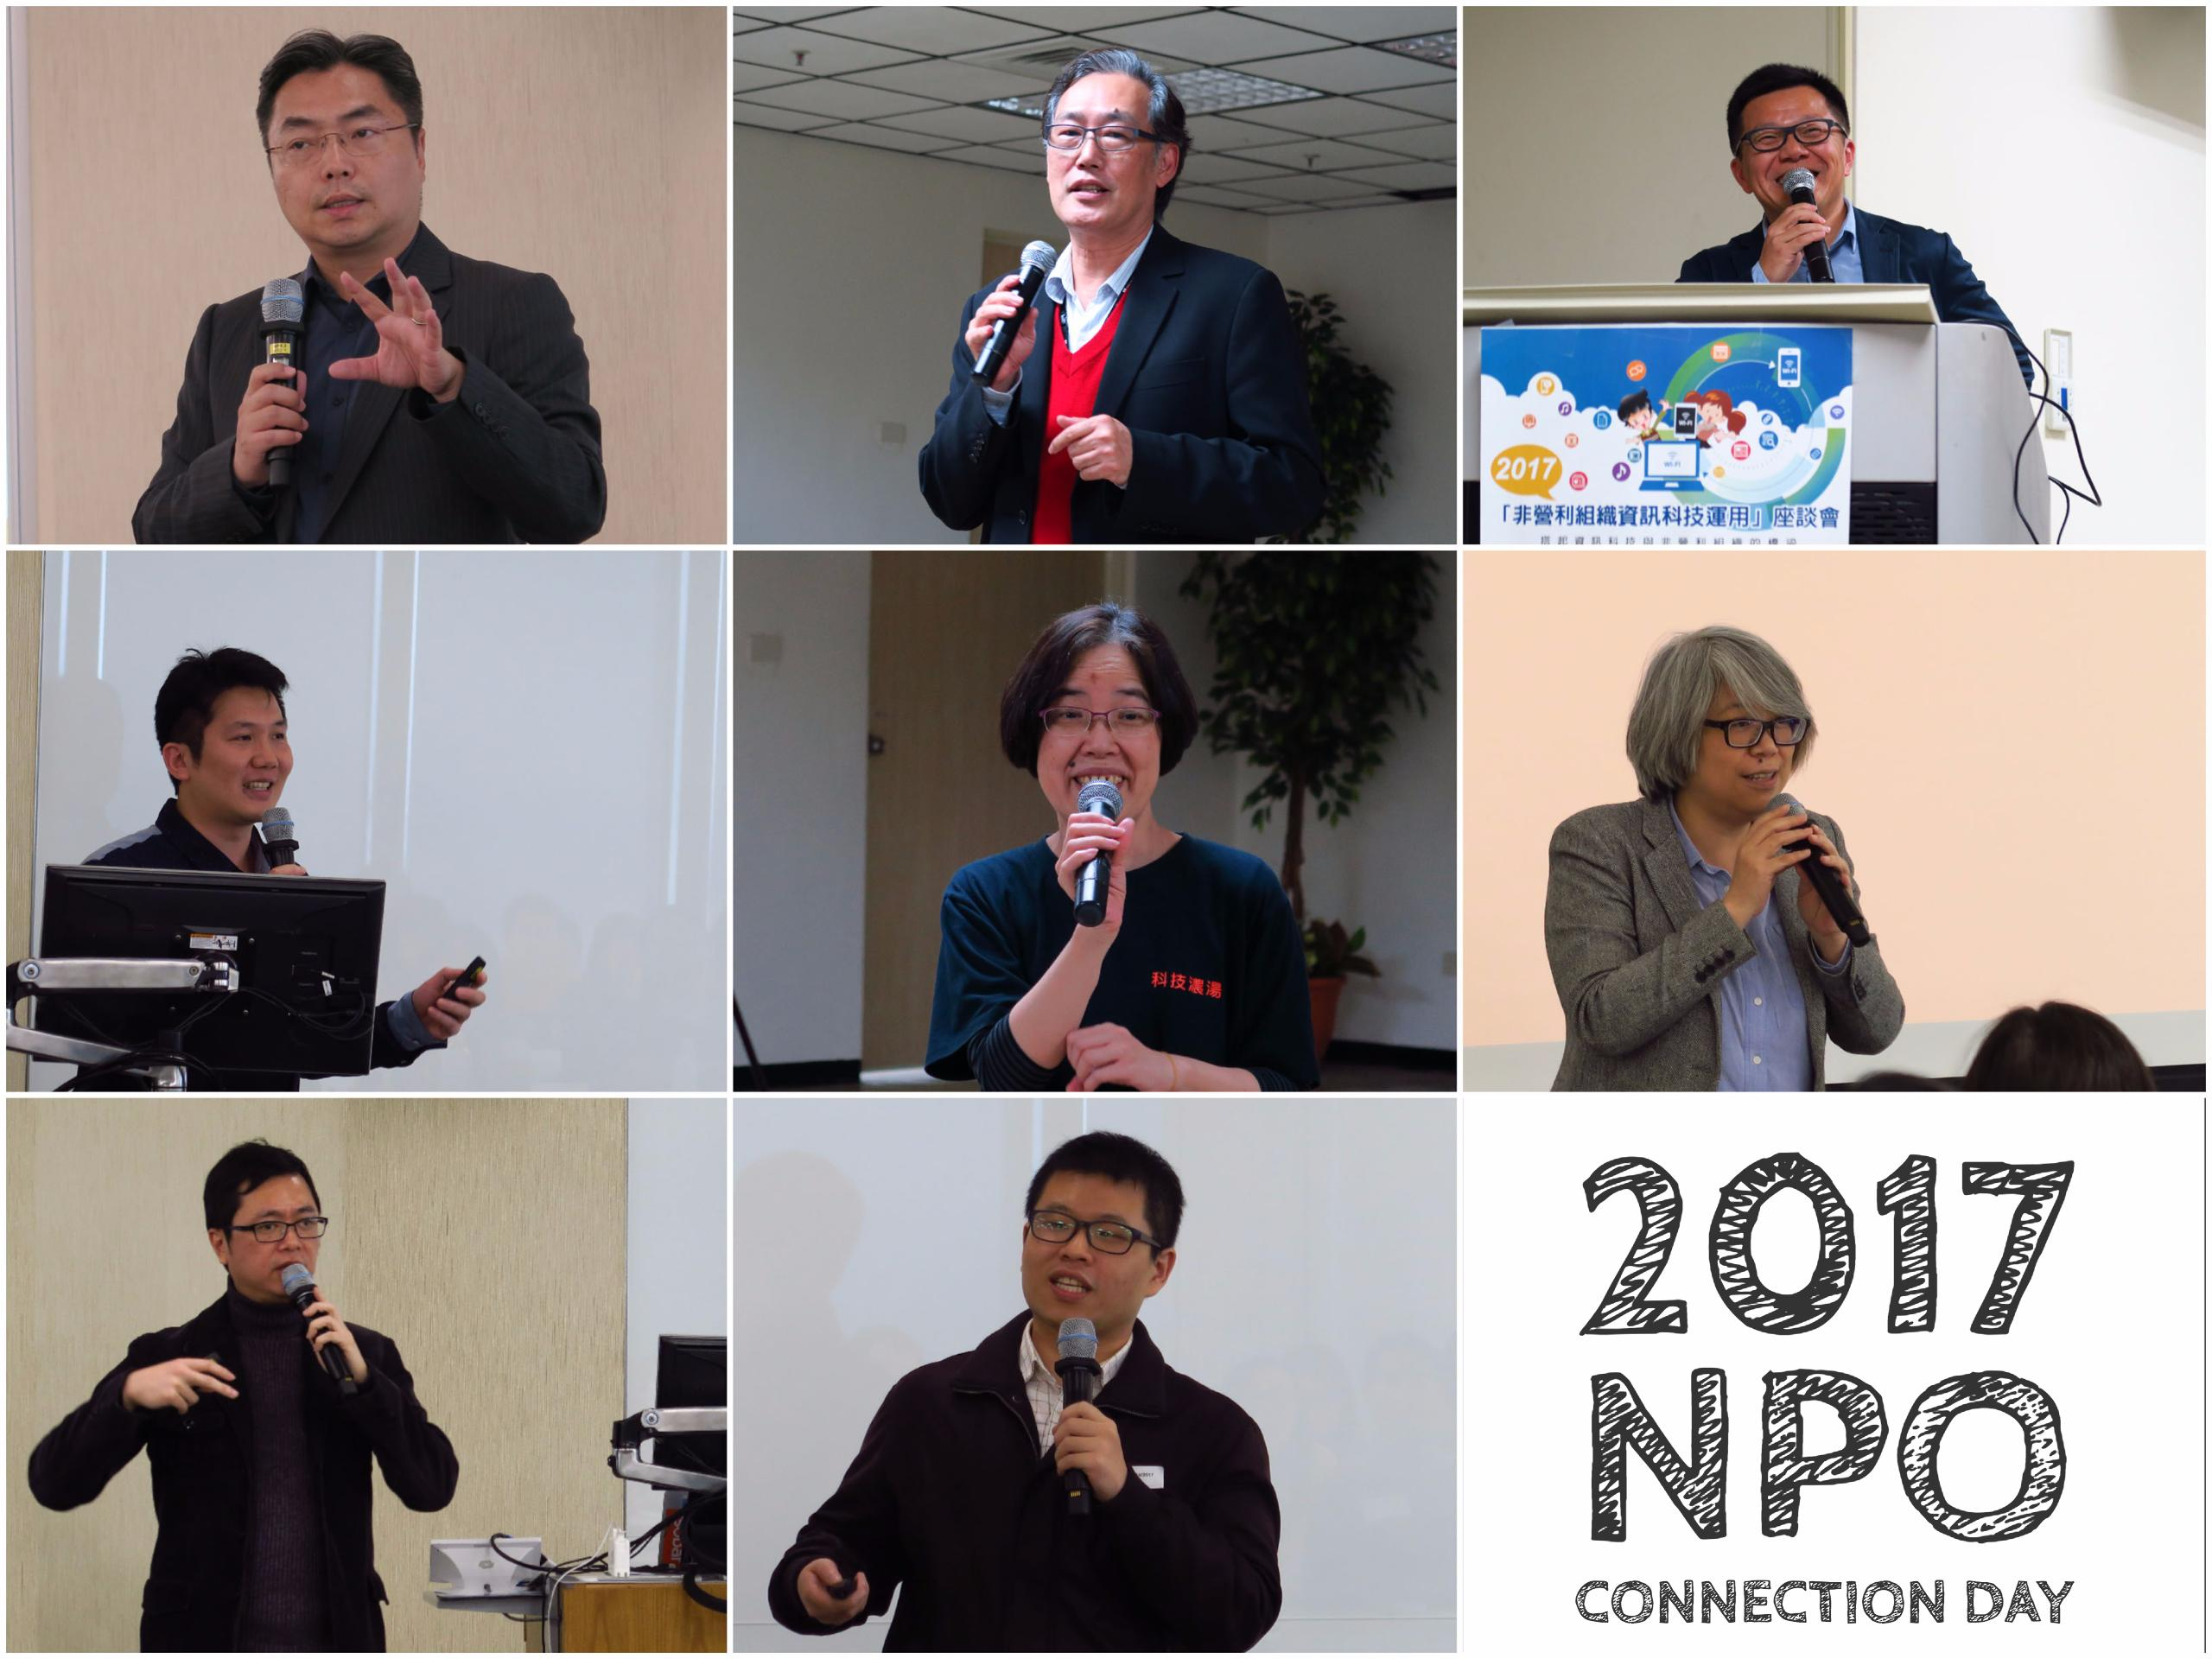 NGO Connection Day 2017 in Taiwan